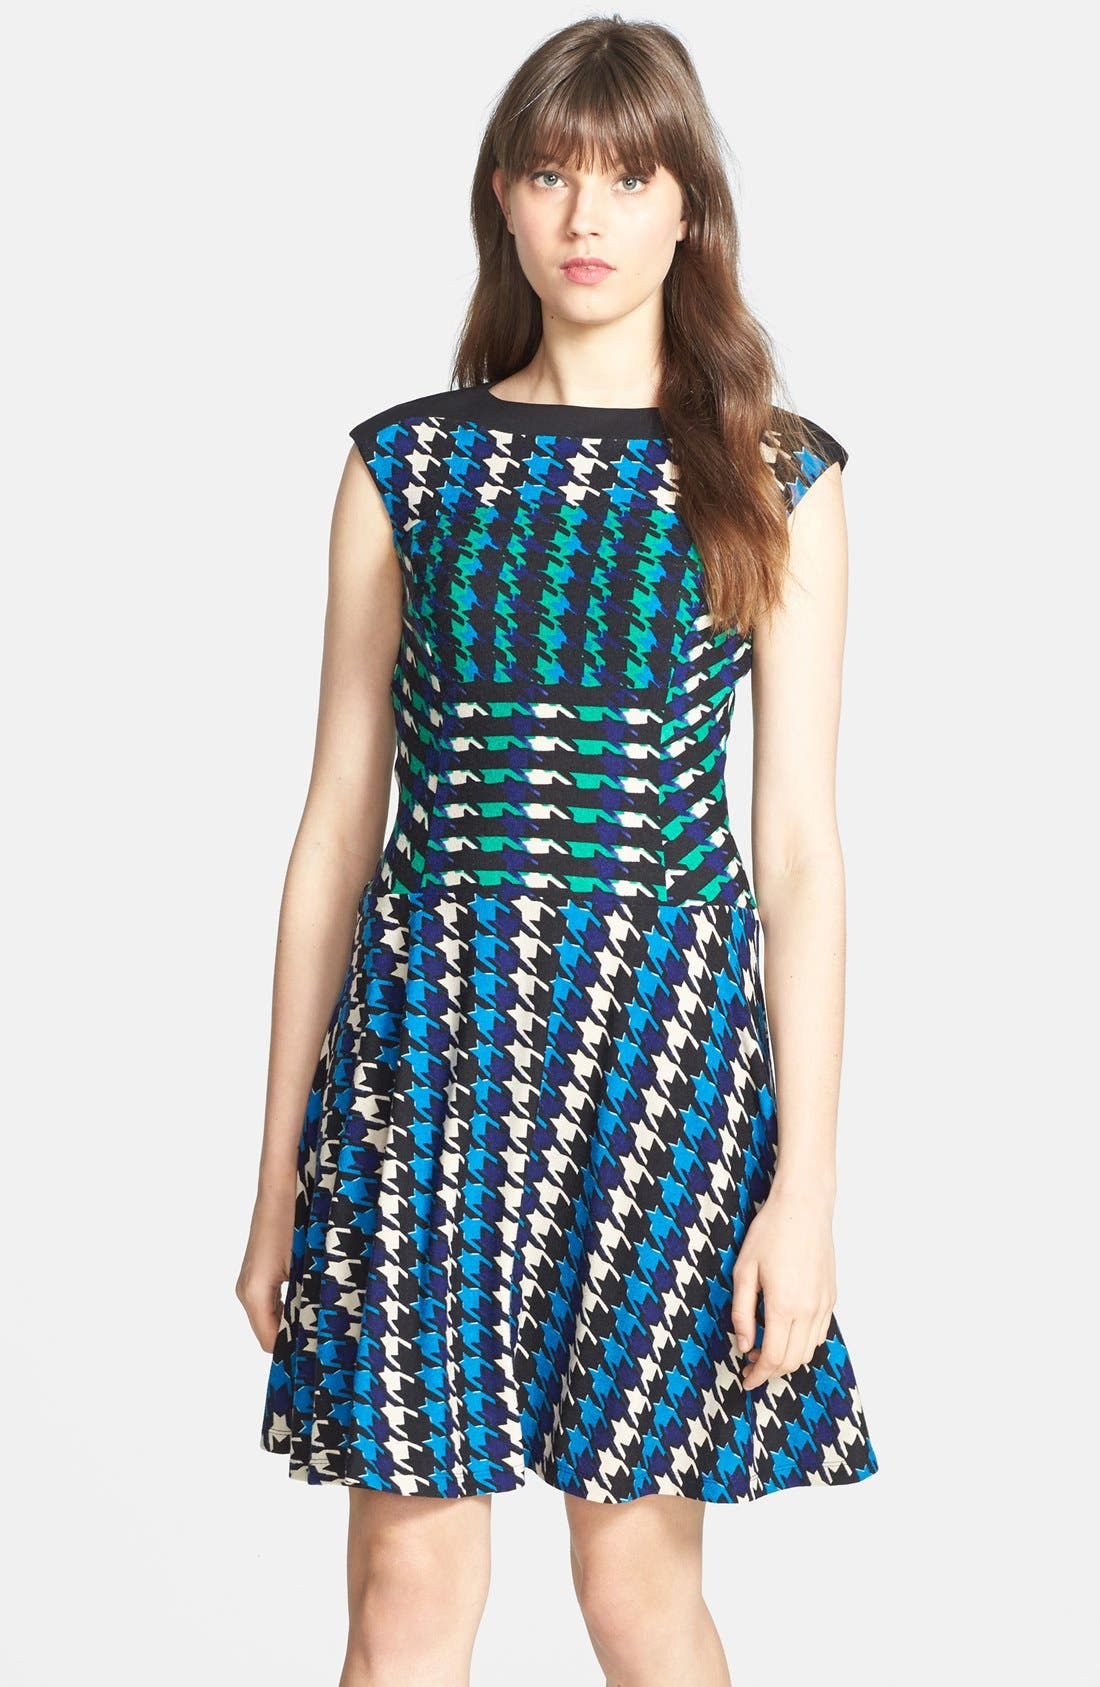 Alternate Image 1 Selected - Gabby Skye Houndstooth Print Ponte Knit Fit & Flare Dress